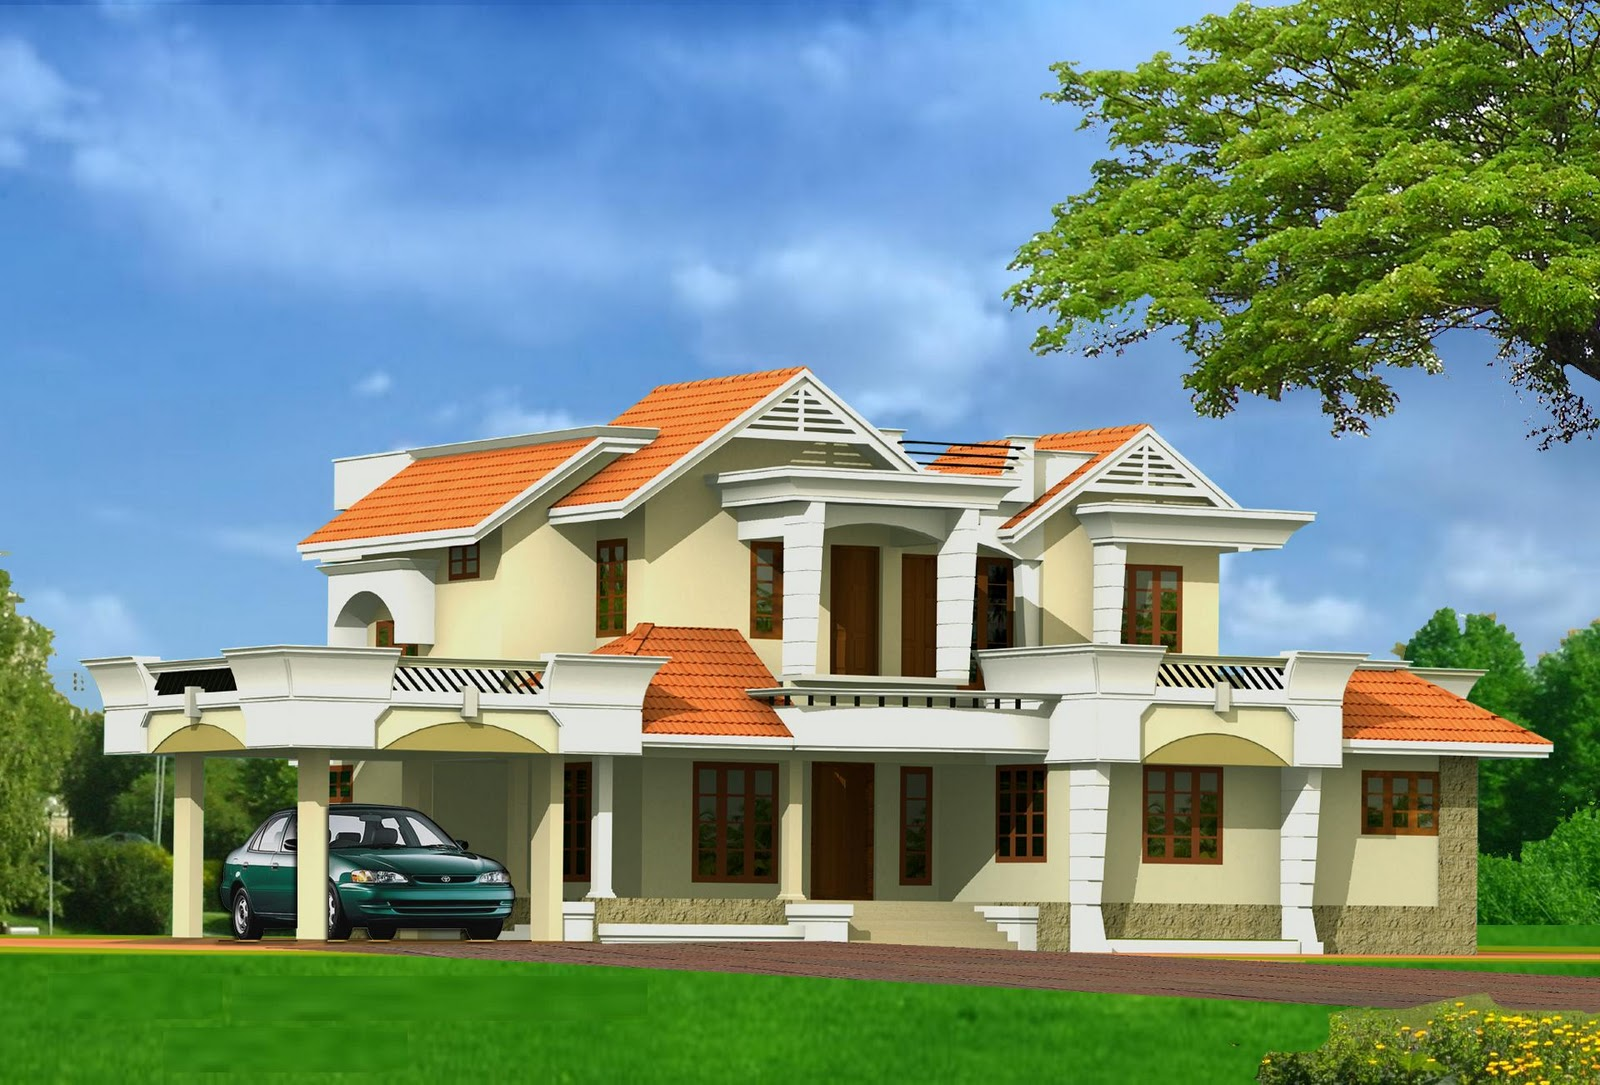 House plans and design architectural designs of for House construction plans